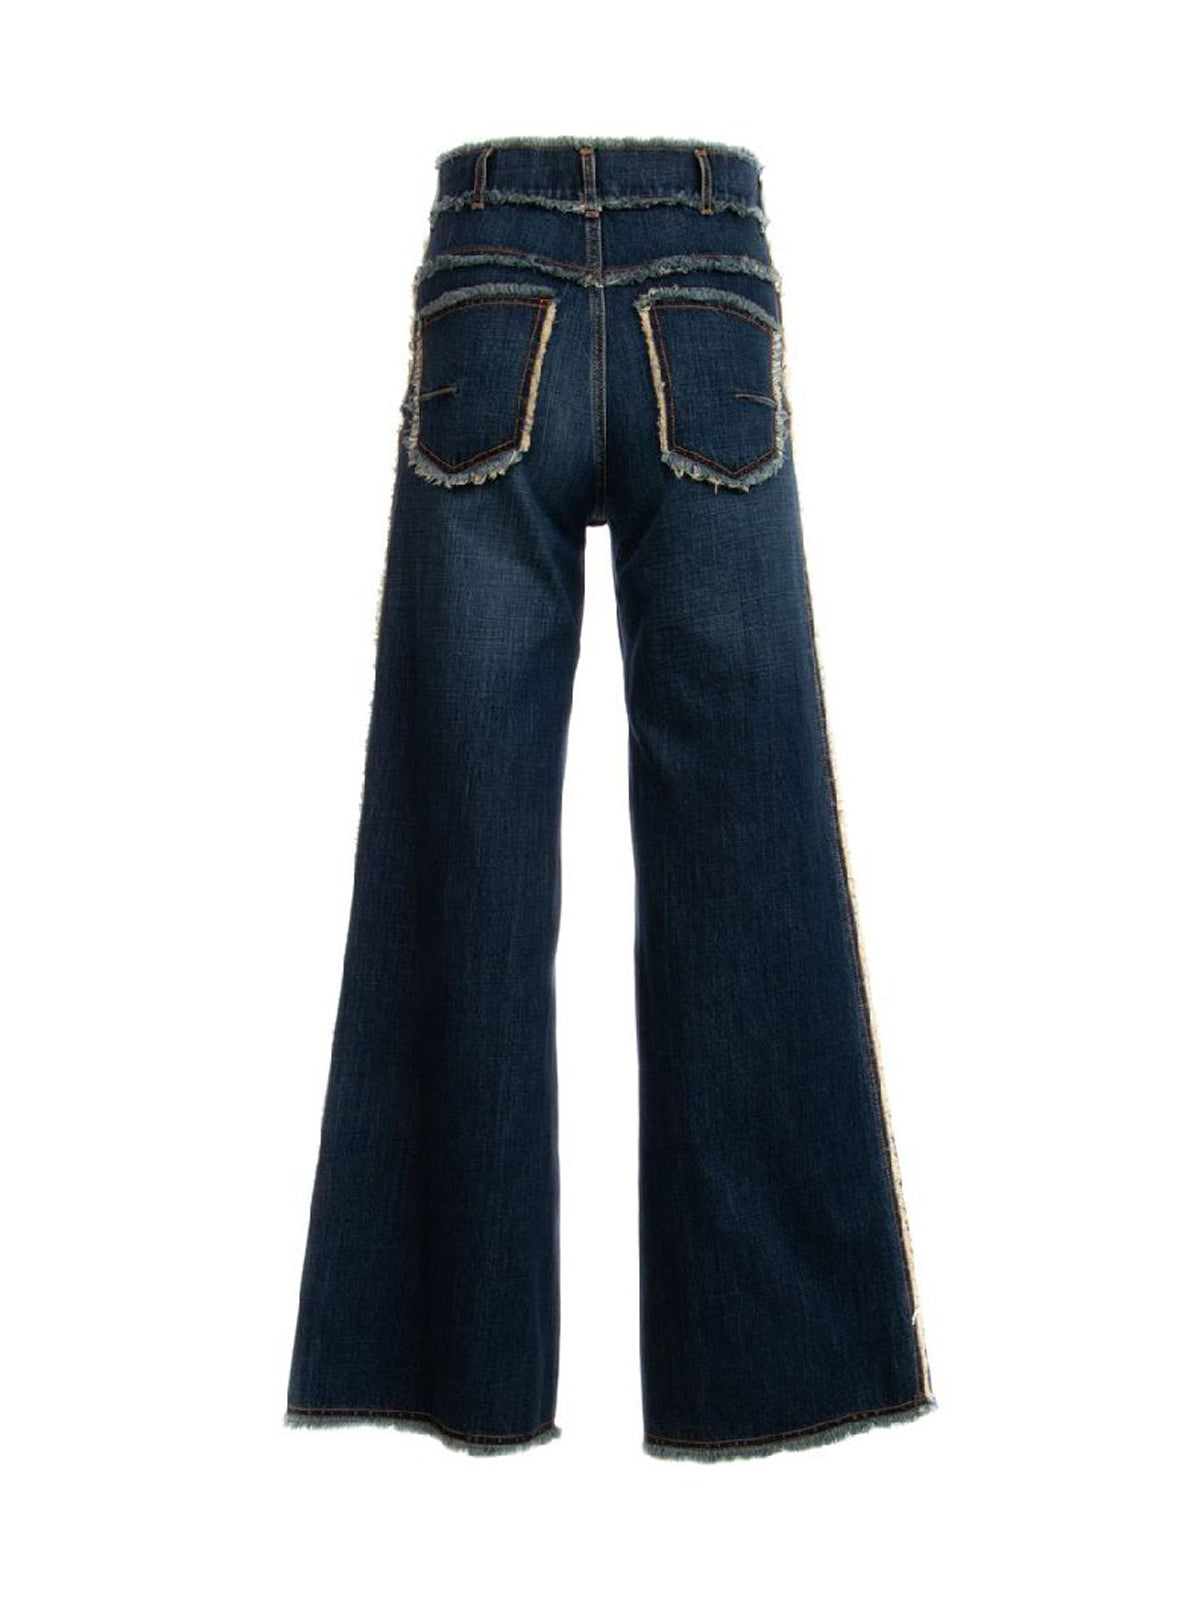 MEDIUM WASH FRAYED ACCENT DENIM JEANS